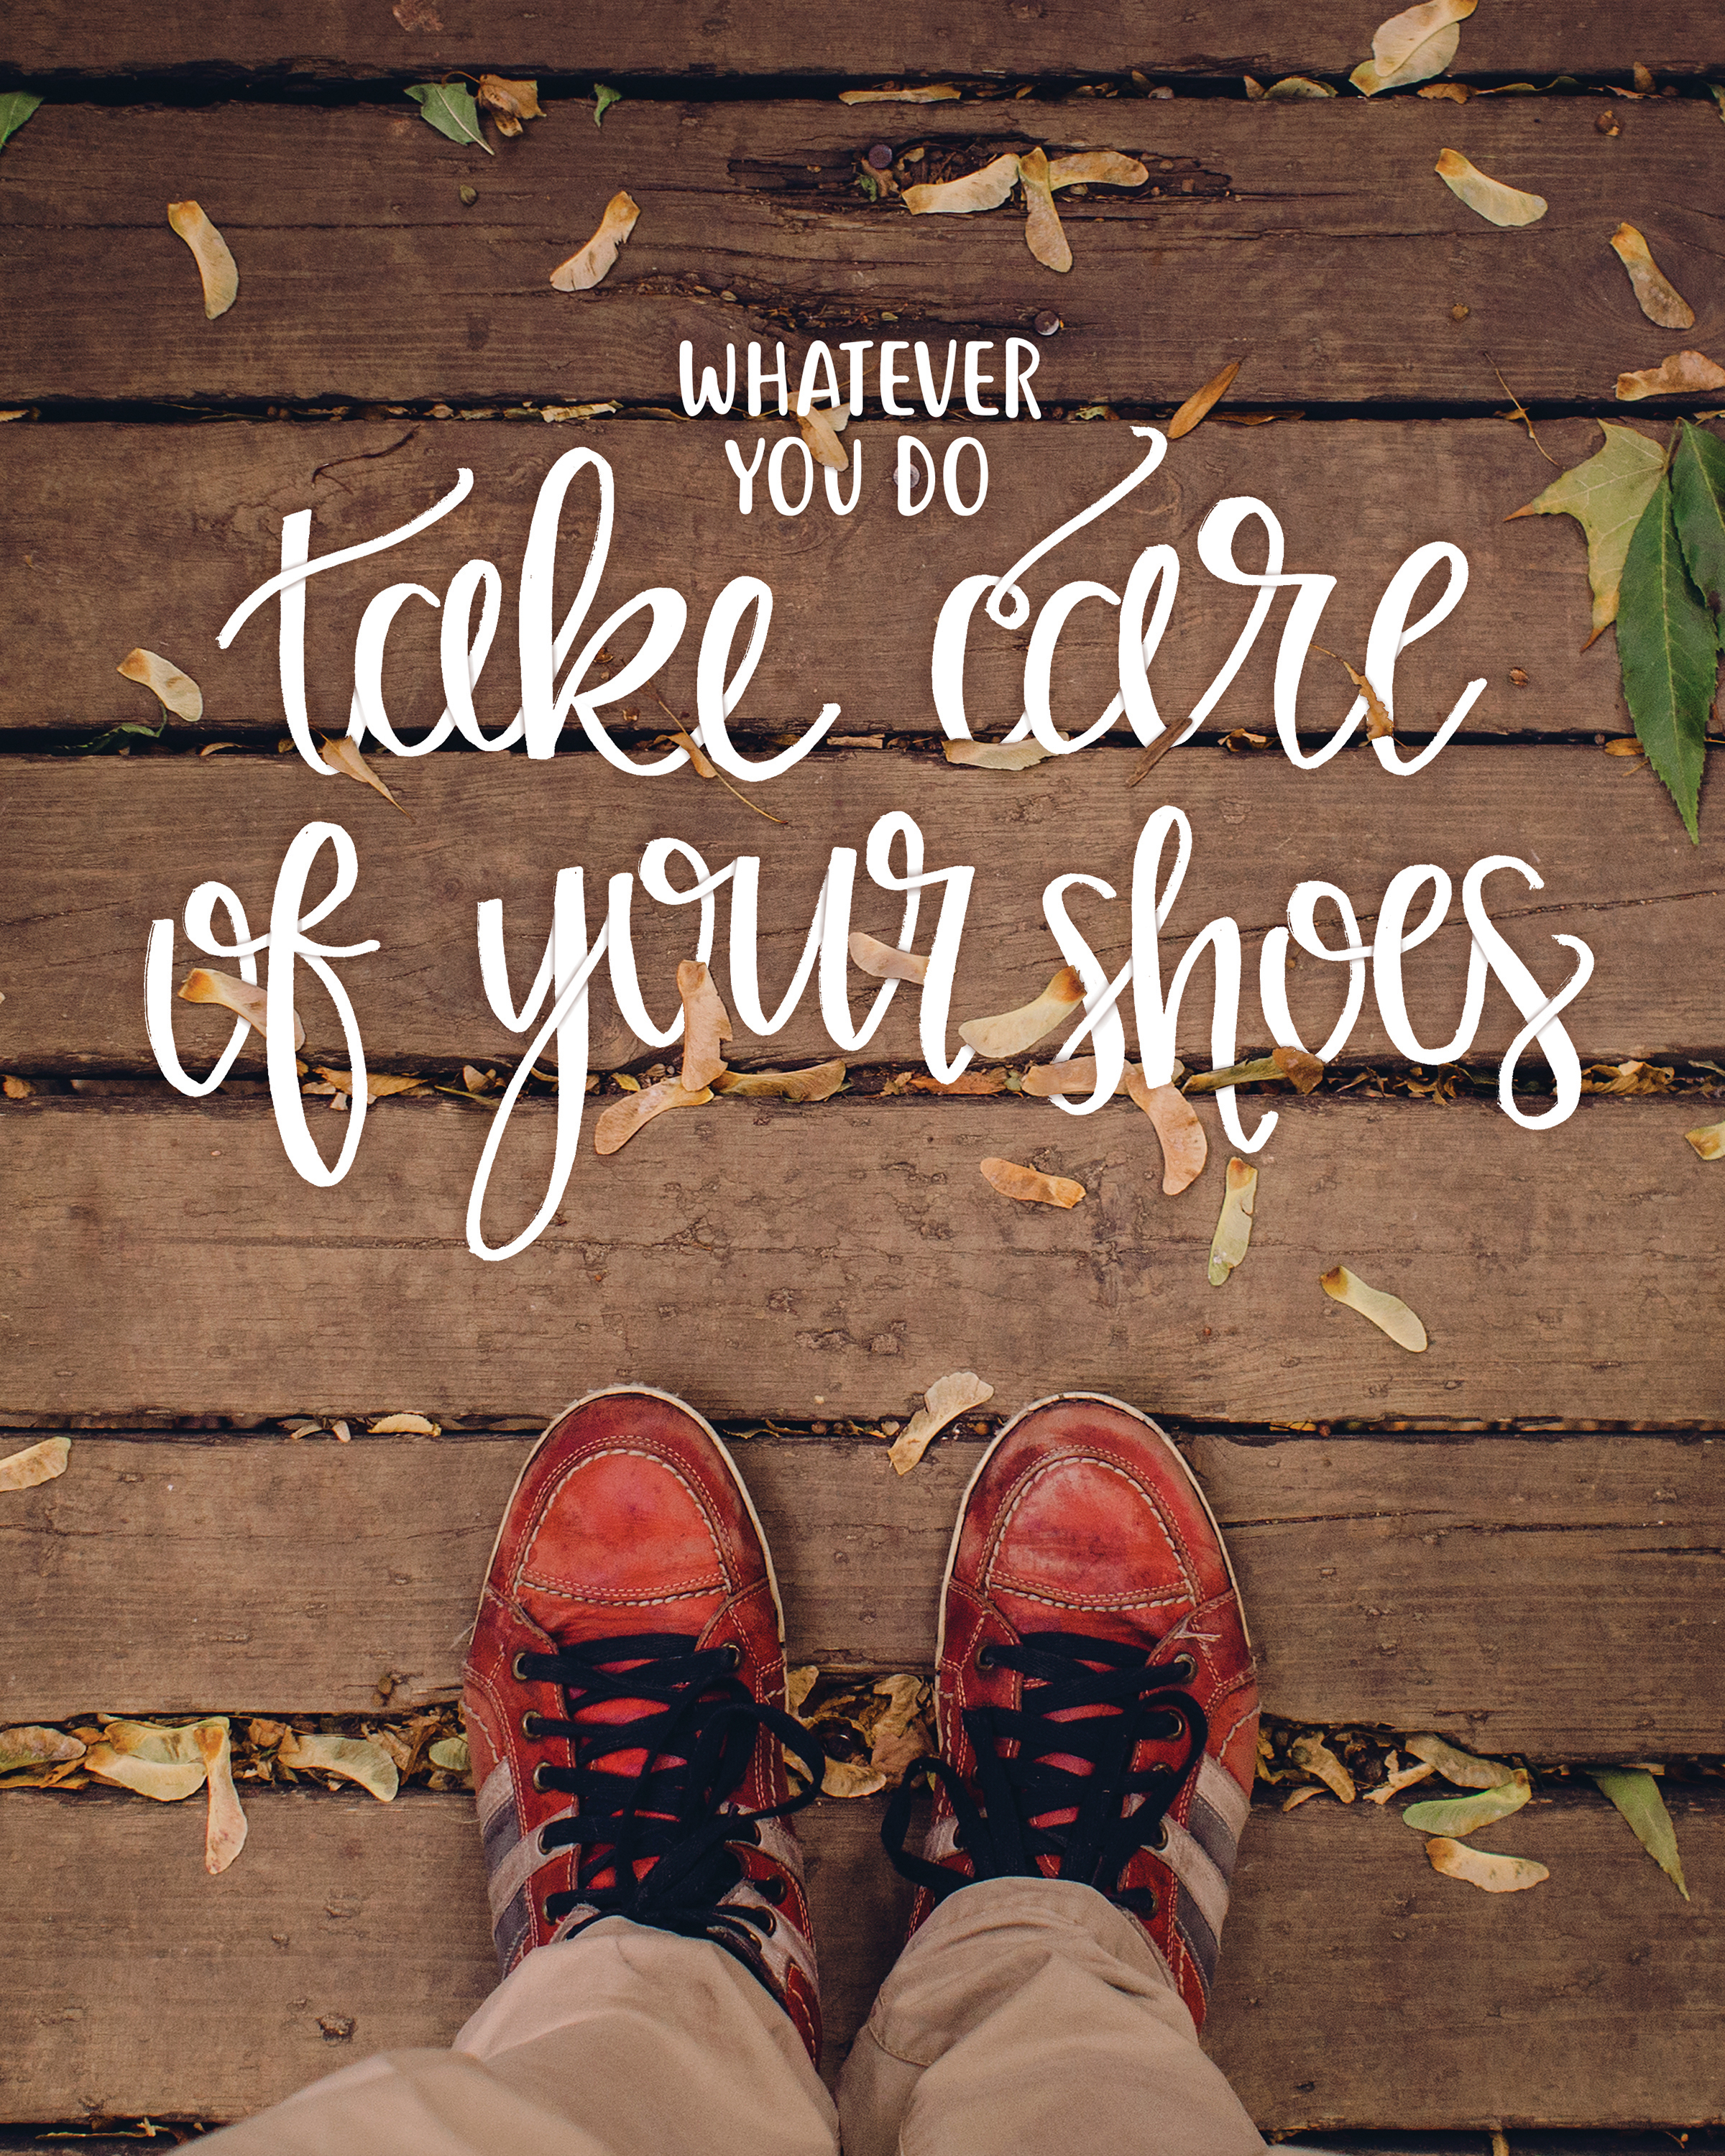 whatever you do take care of your shoes